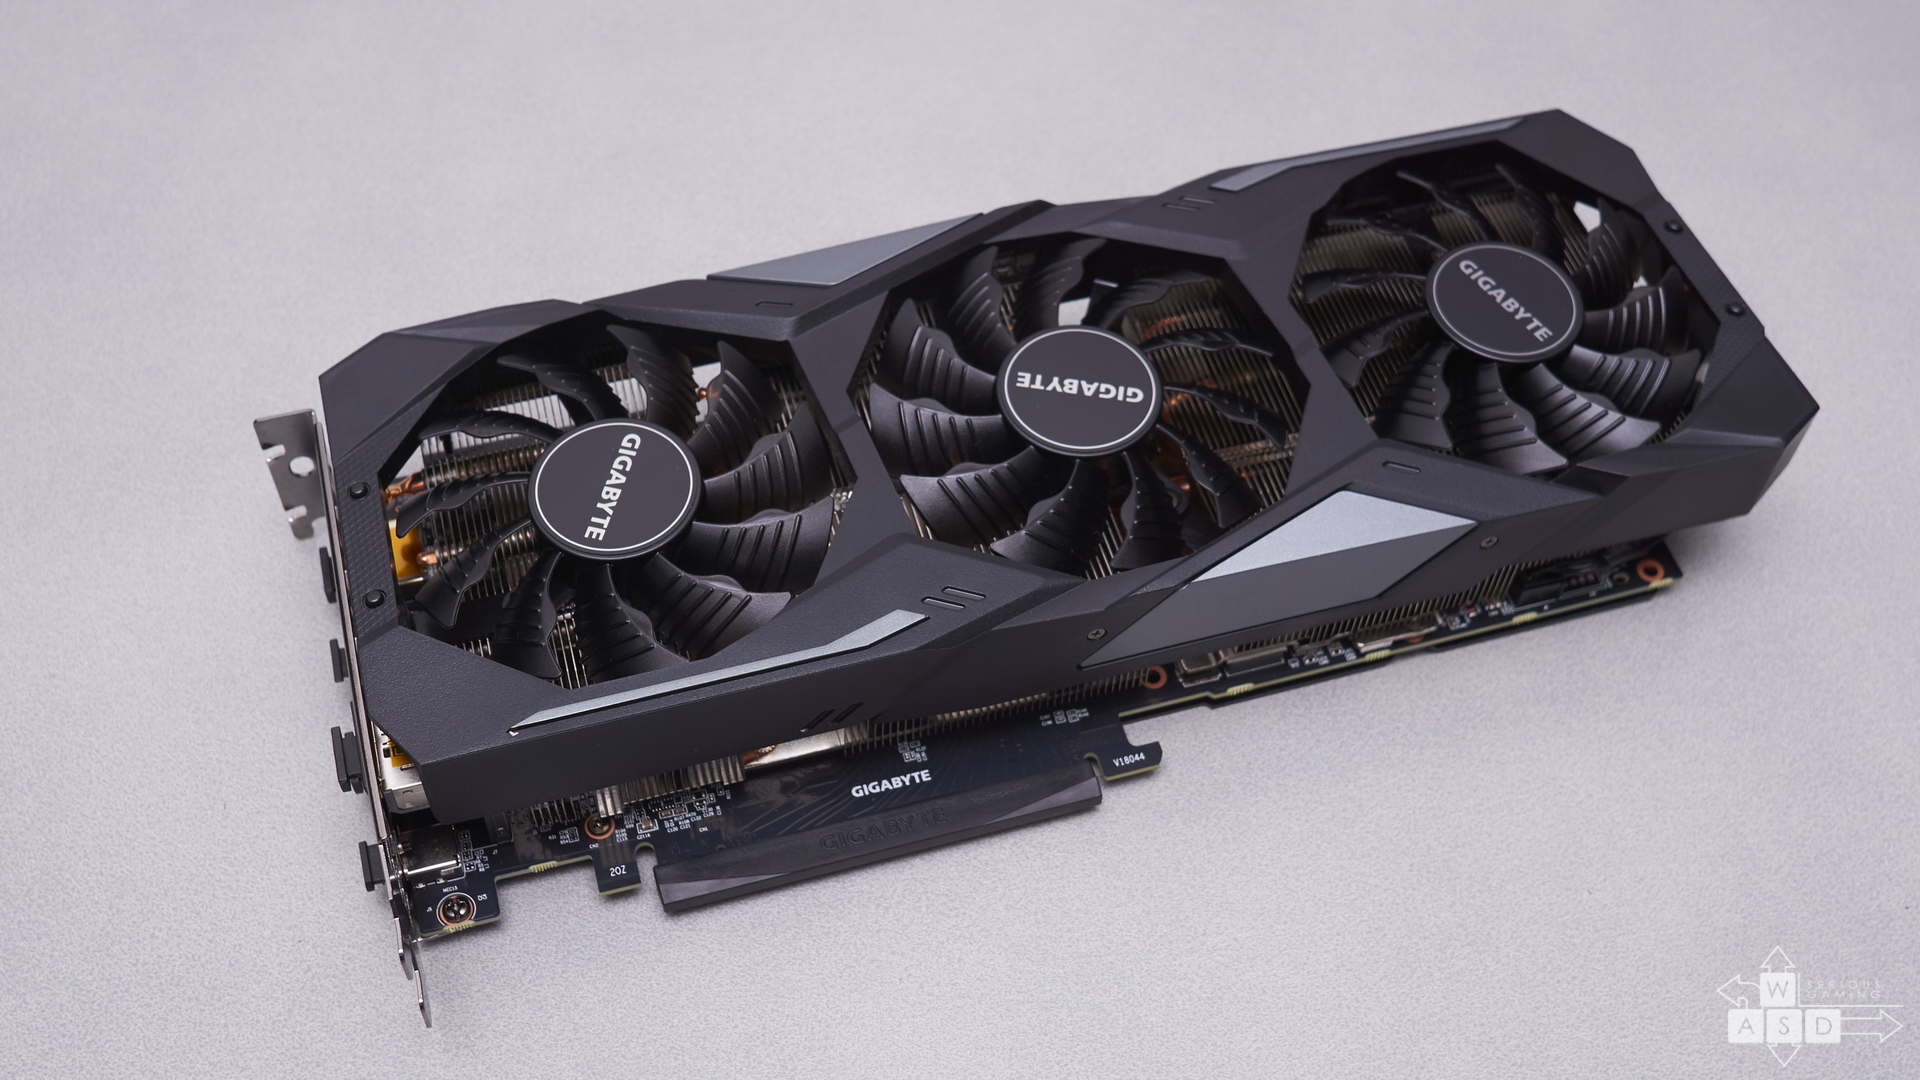 Gigabyte GeForce RTX 2070 Super Gaming OC 8G review | WASD